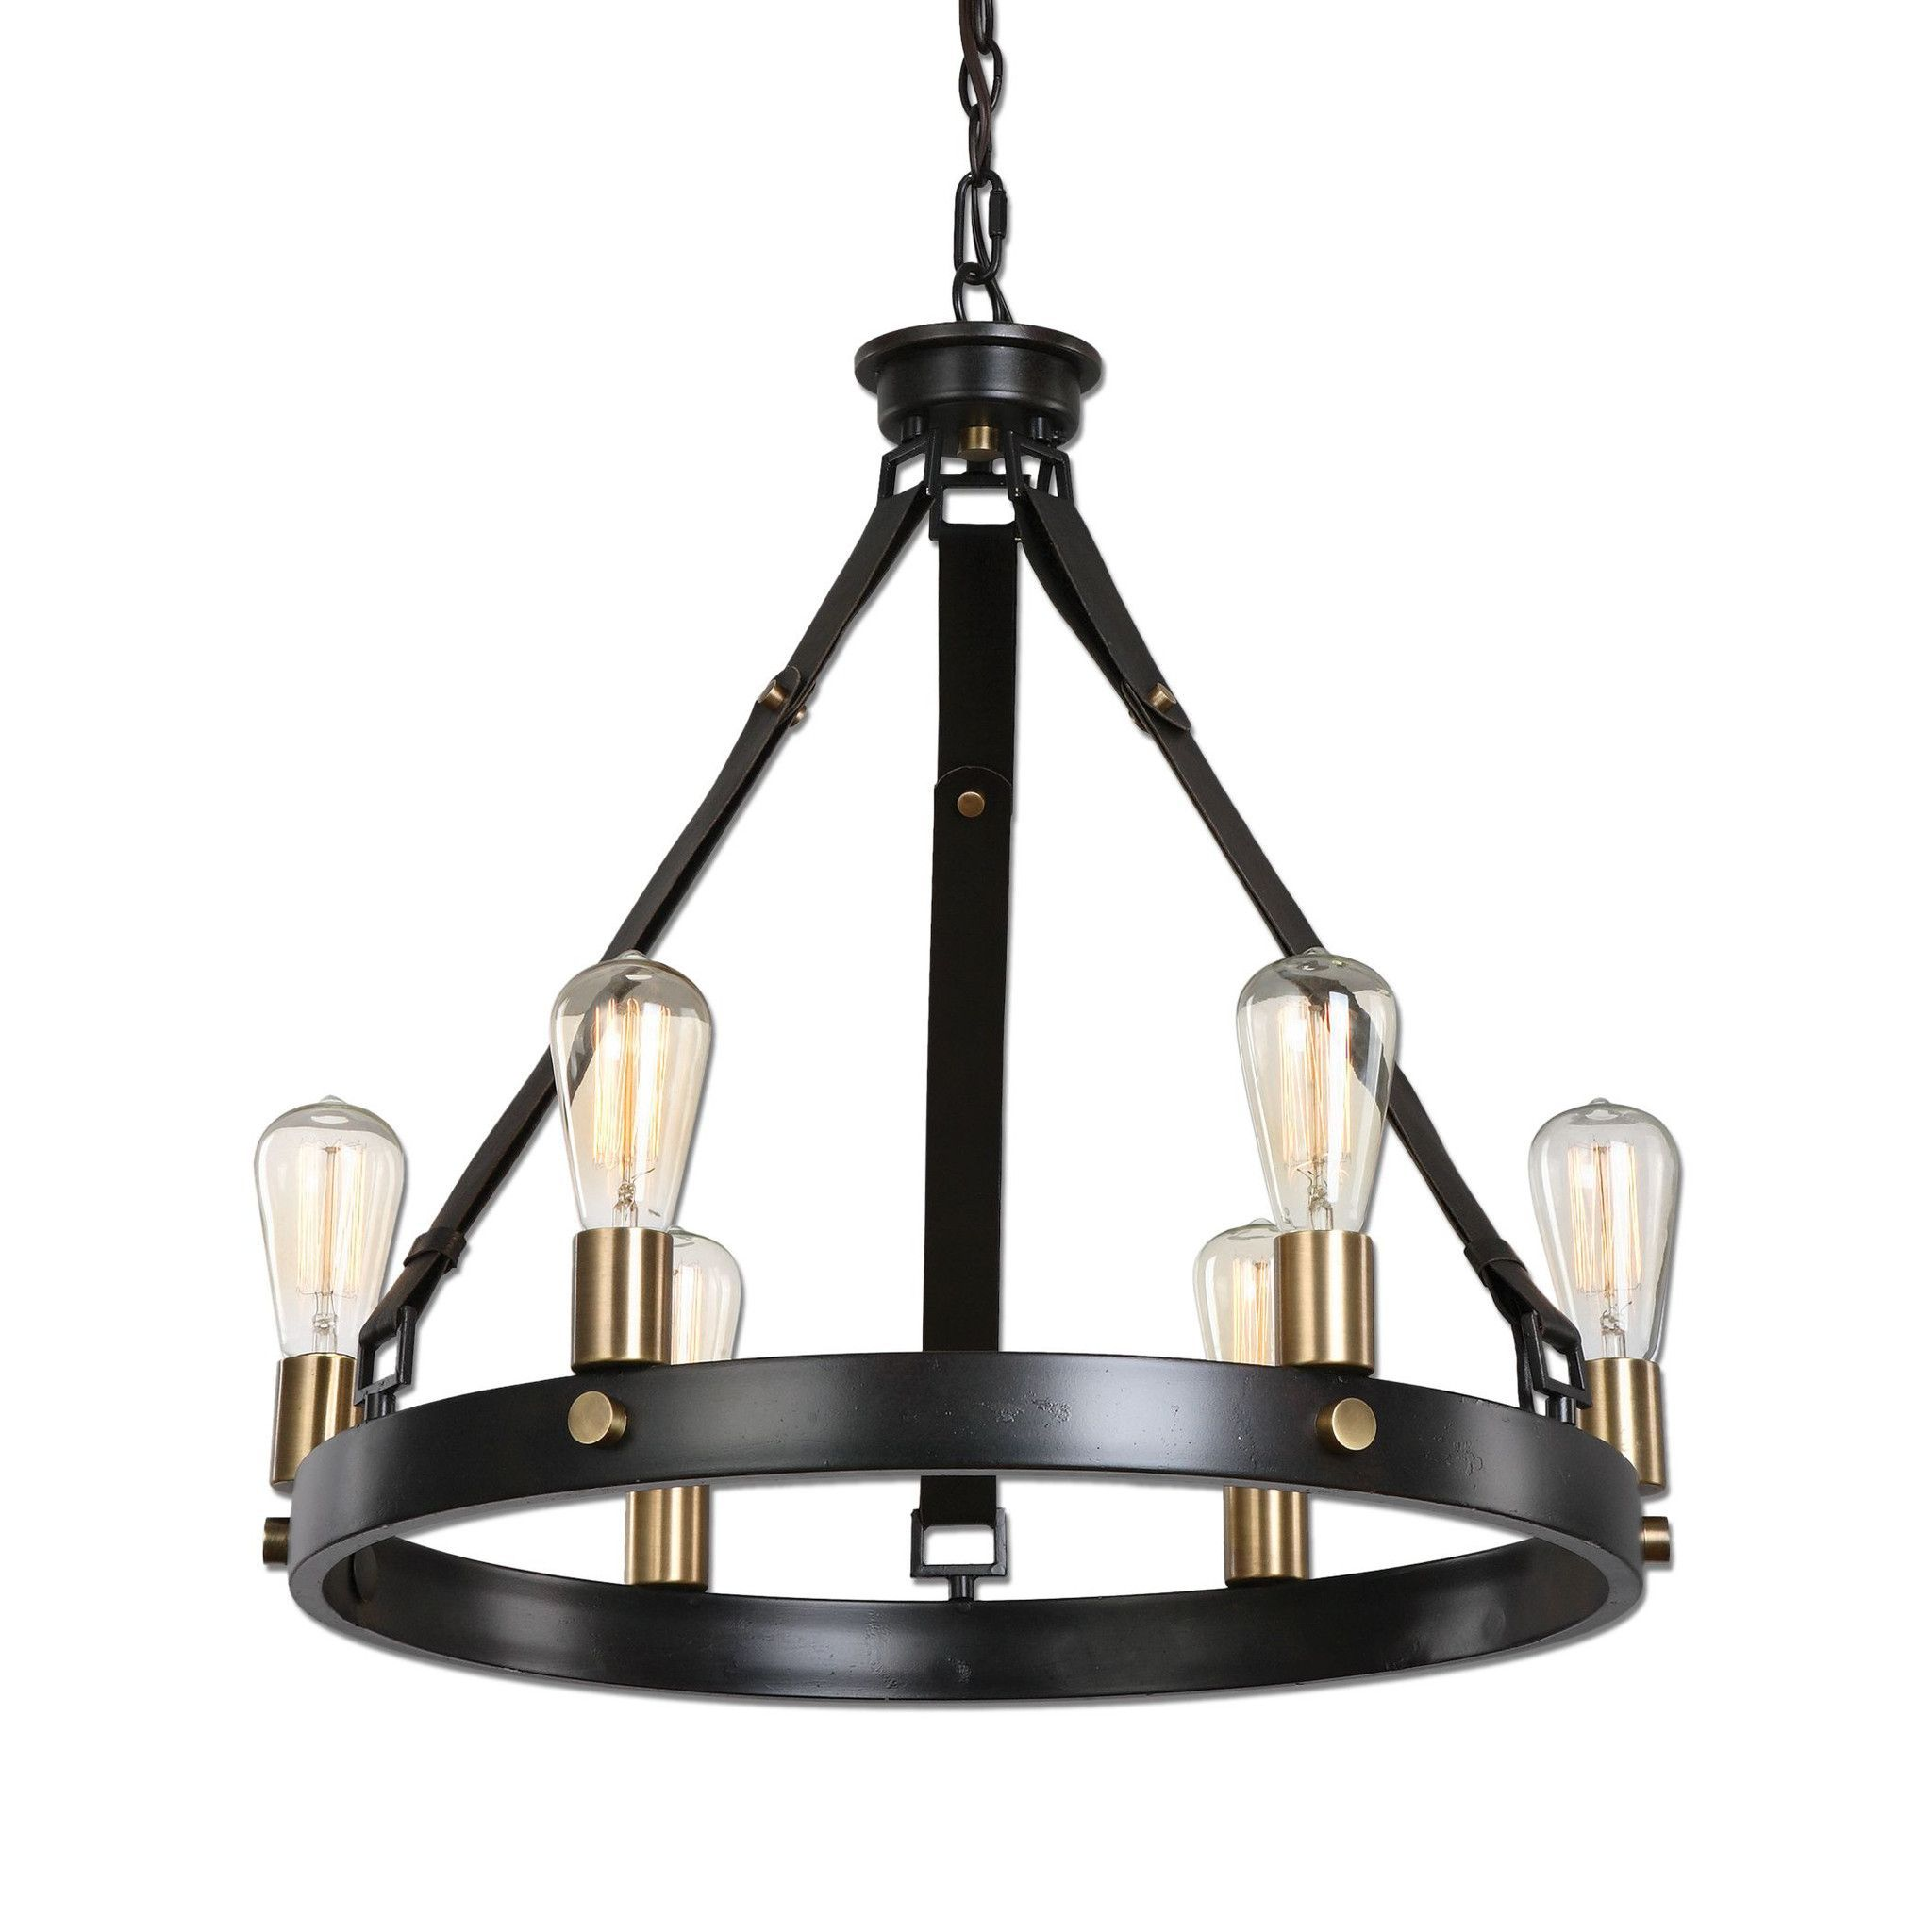 Uttermost Marlow 6 Light Antique Bronze Chandelier 21273